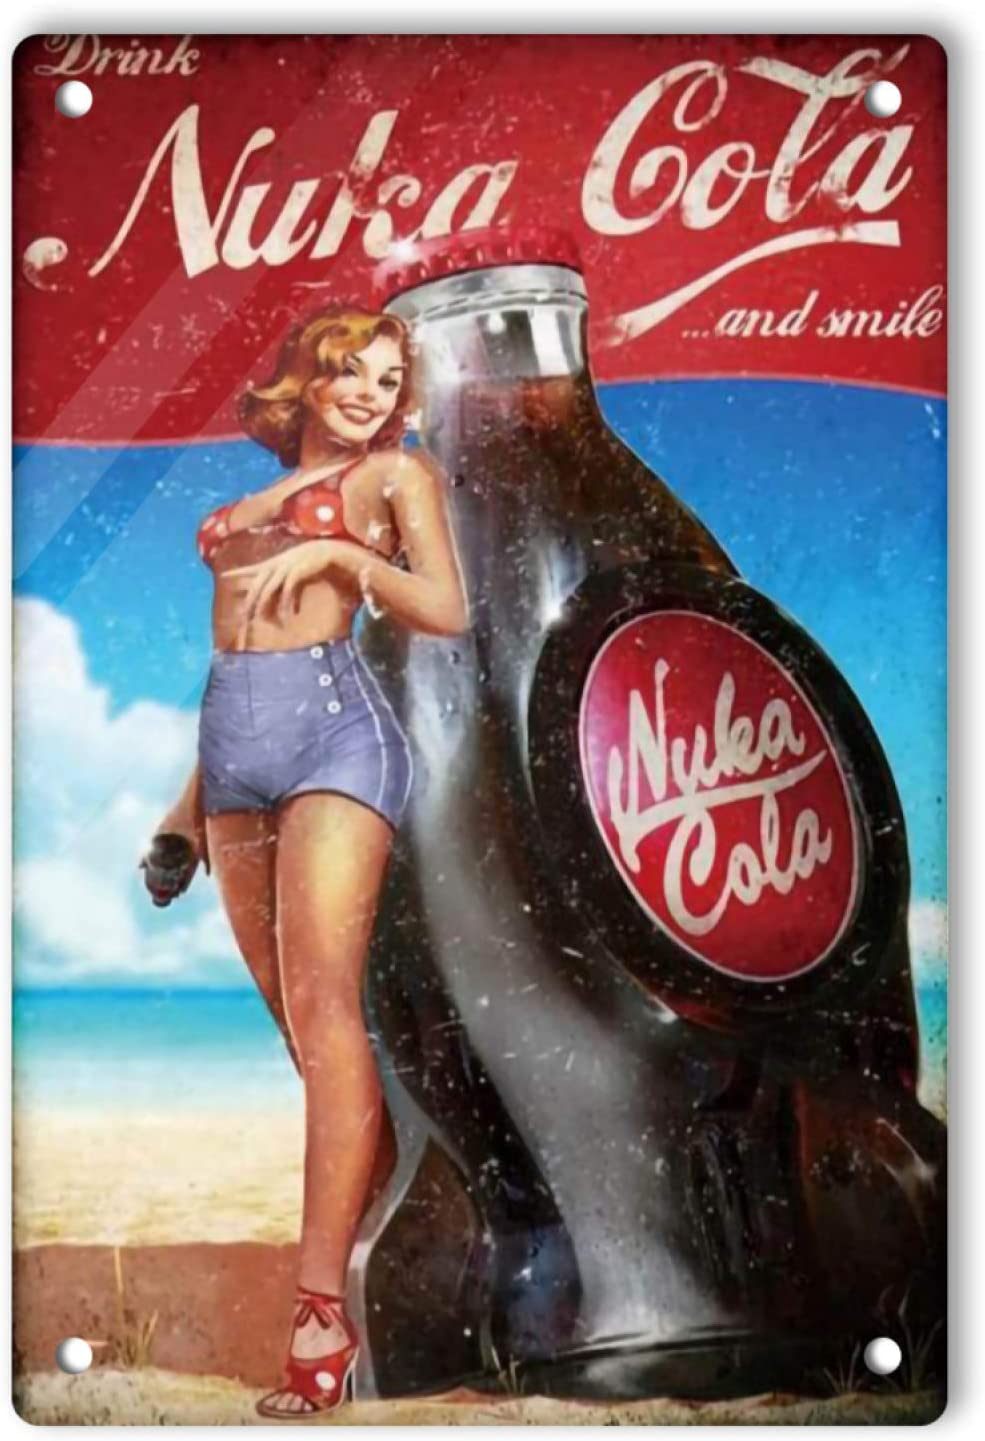 Ovonetune Vintage Pin Up Girl Cocacola Funny Tin Signs, Retro Lightweight Sign Wall Art Decor Fallout Poster for Men Cave Home Bars Cafes Pubs, 12x8 Inch